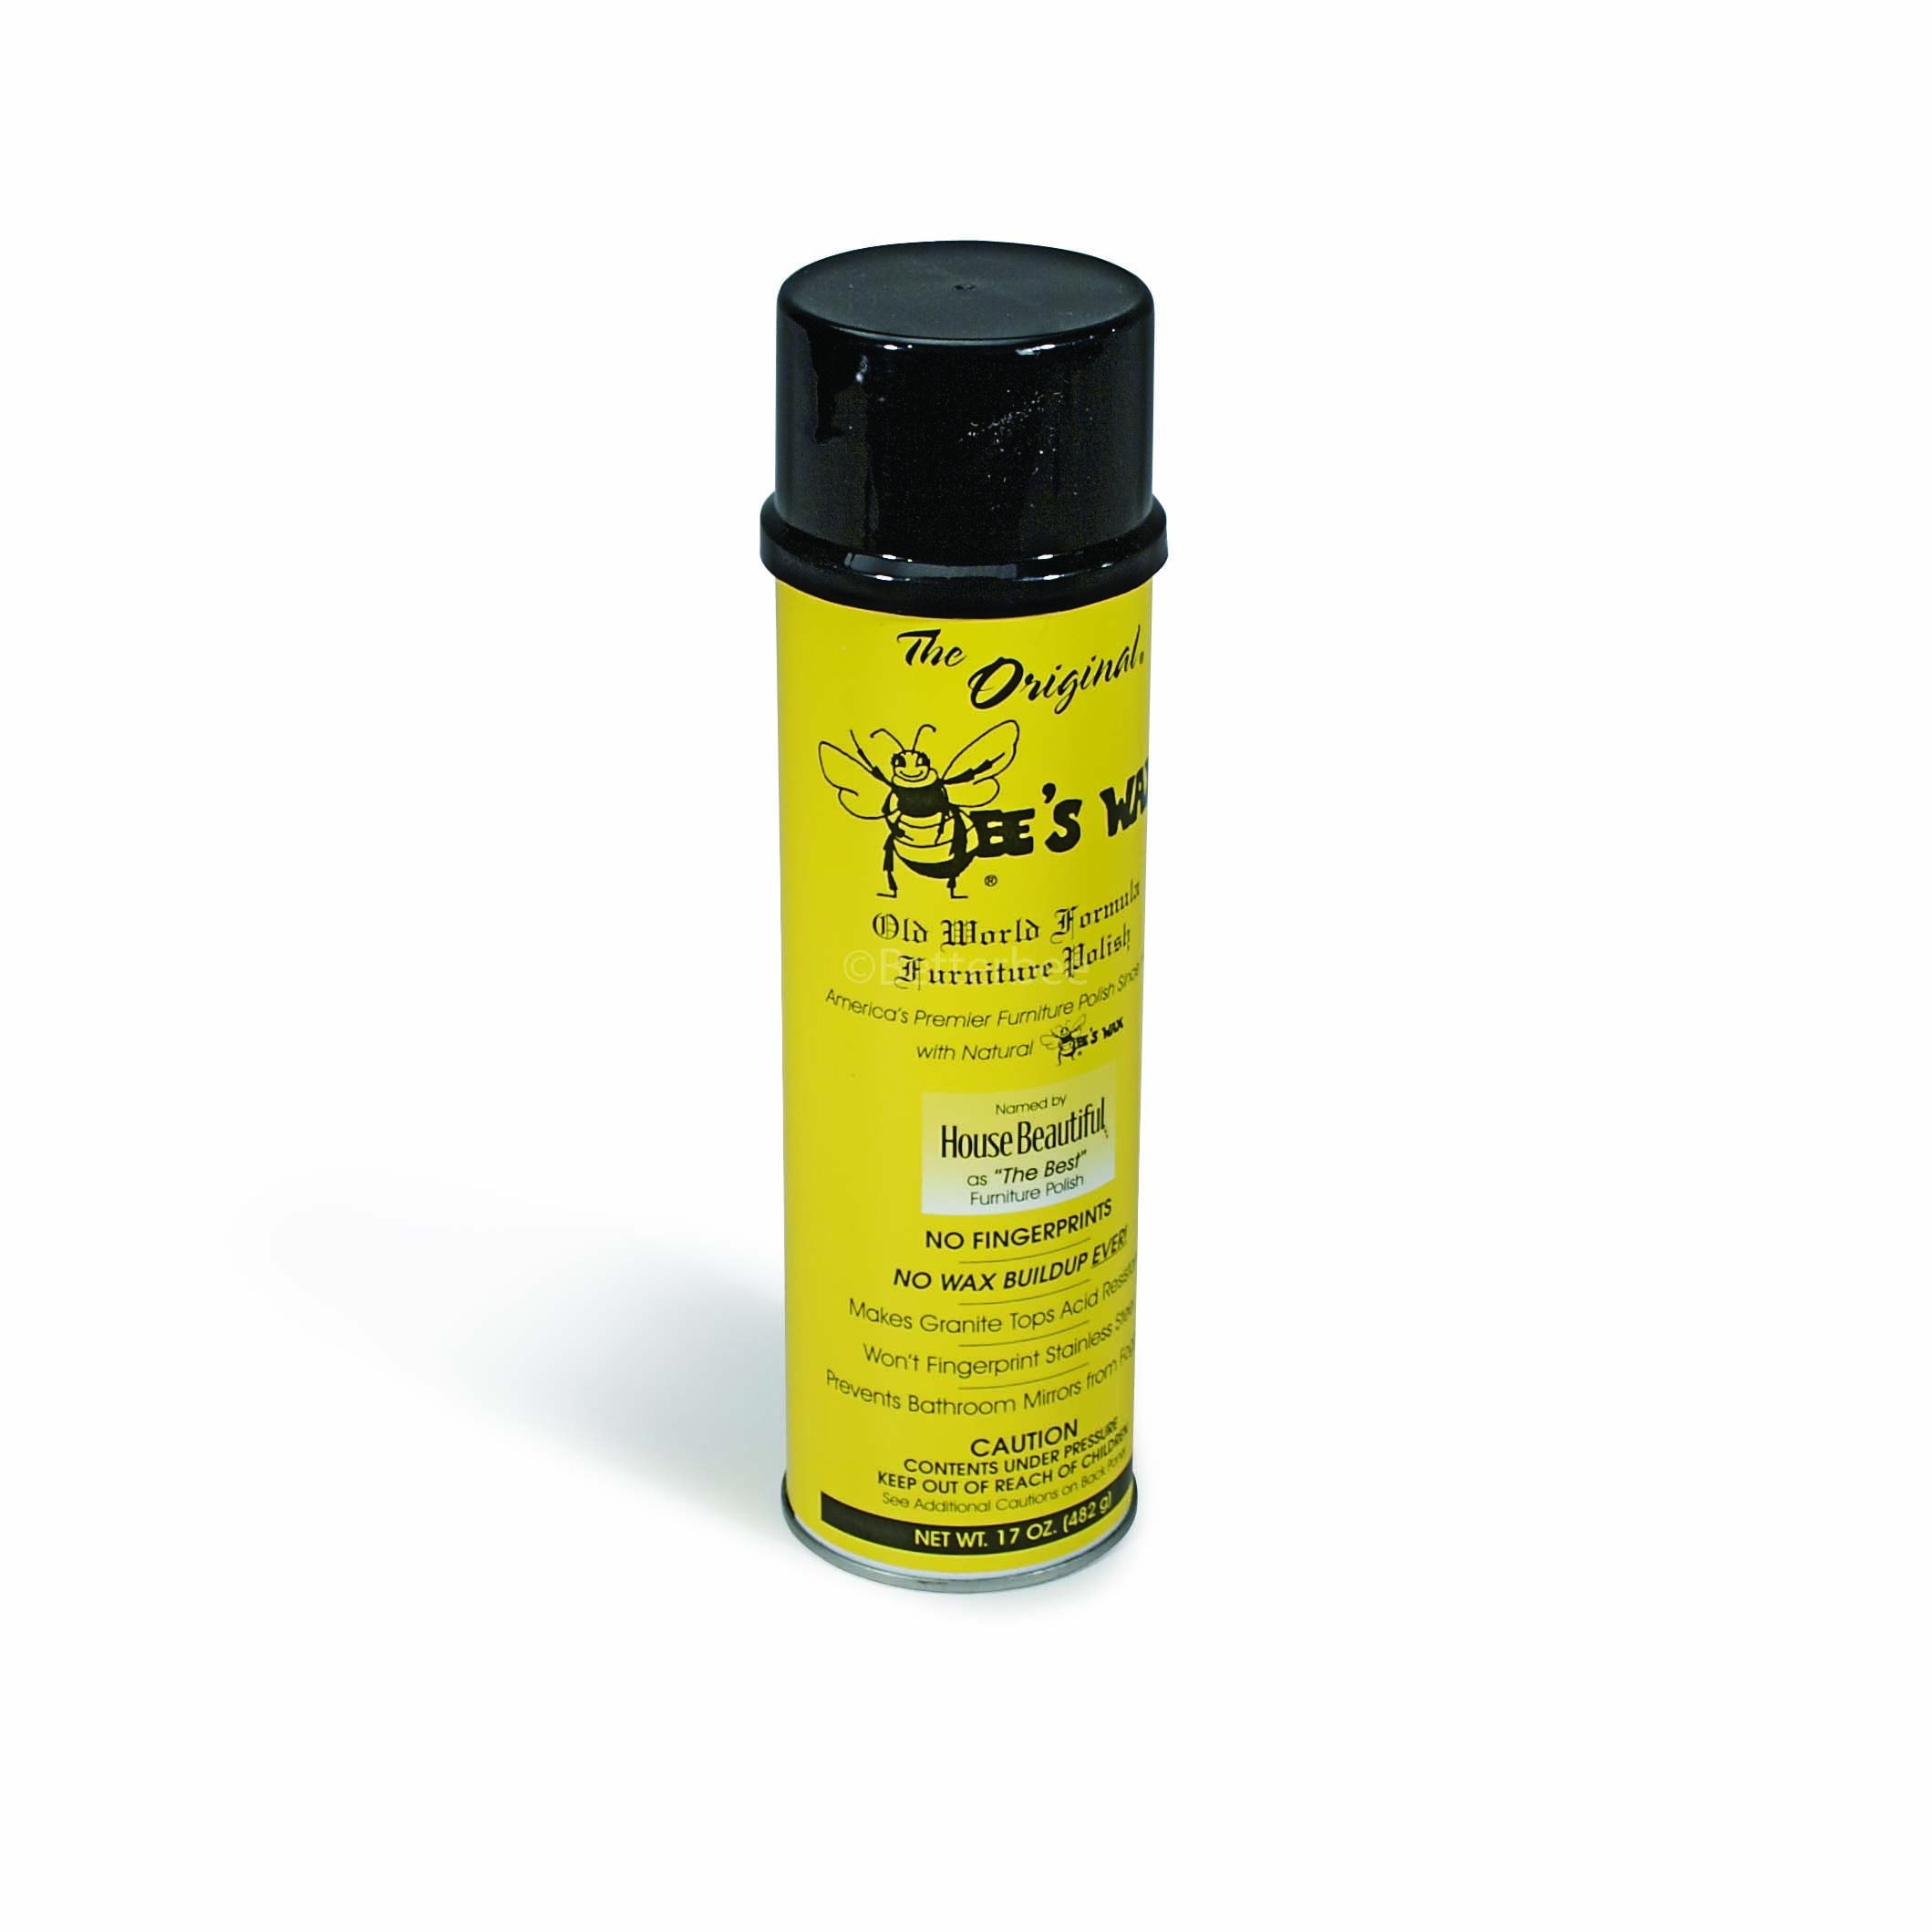 original beeswax furniture polish the best all around cleaner i 39 ve ever used hands down my. Black Bedroom Furniture Sets. Home Design Ideas